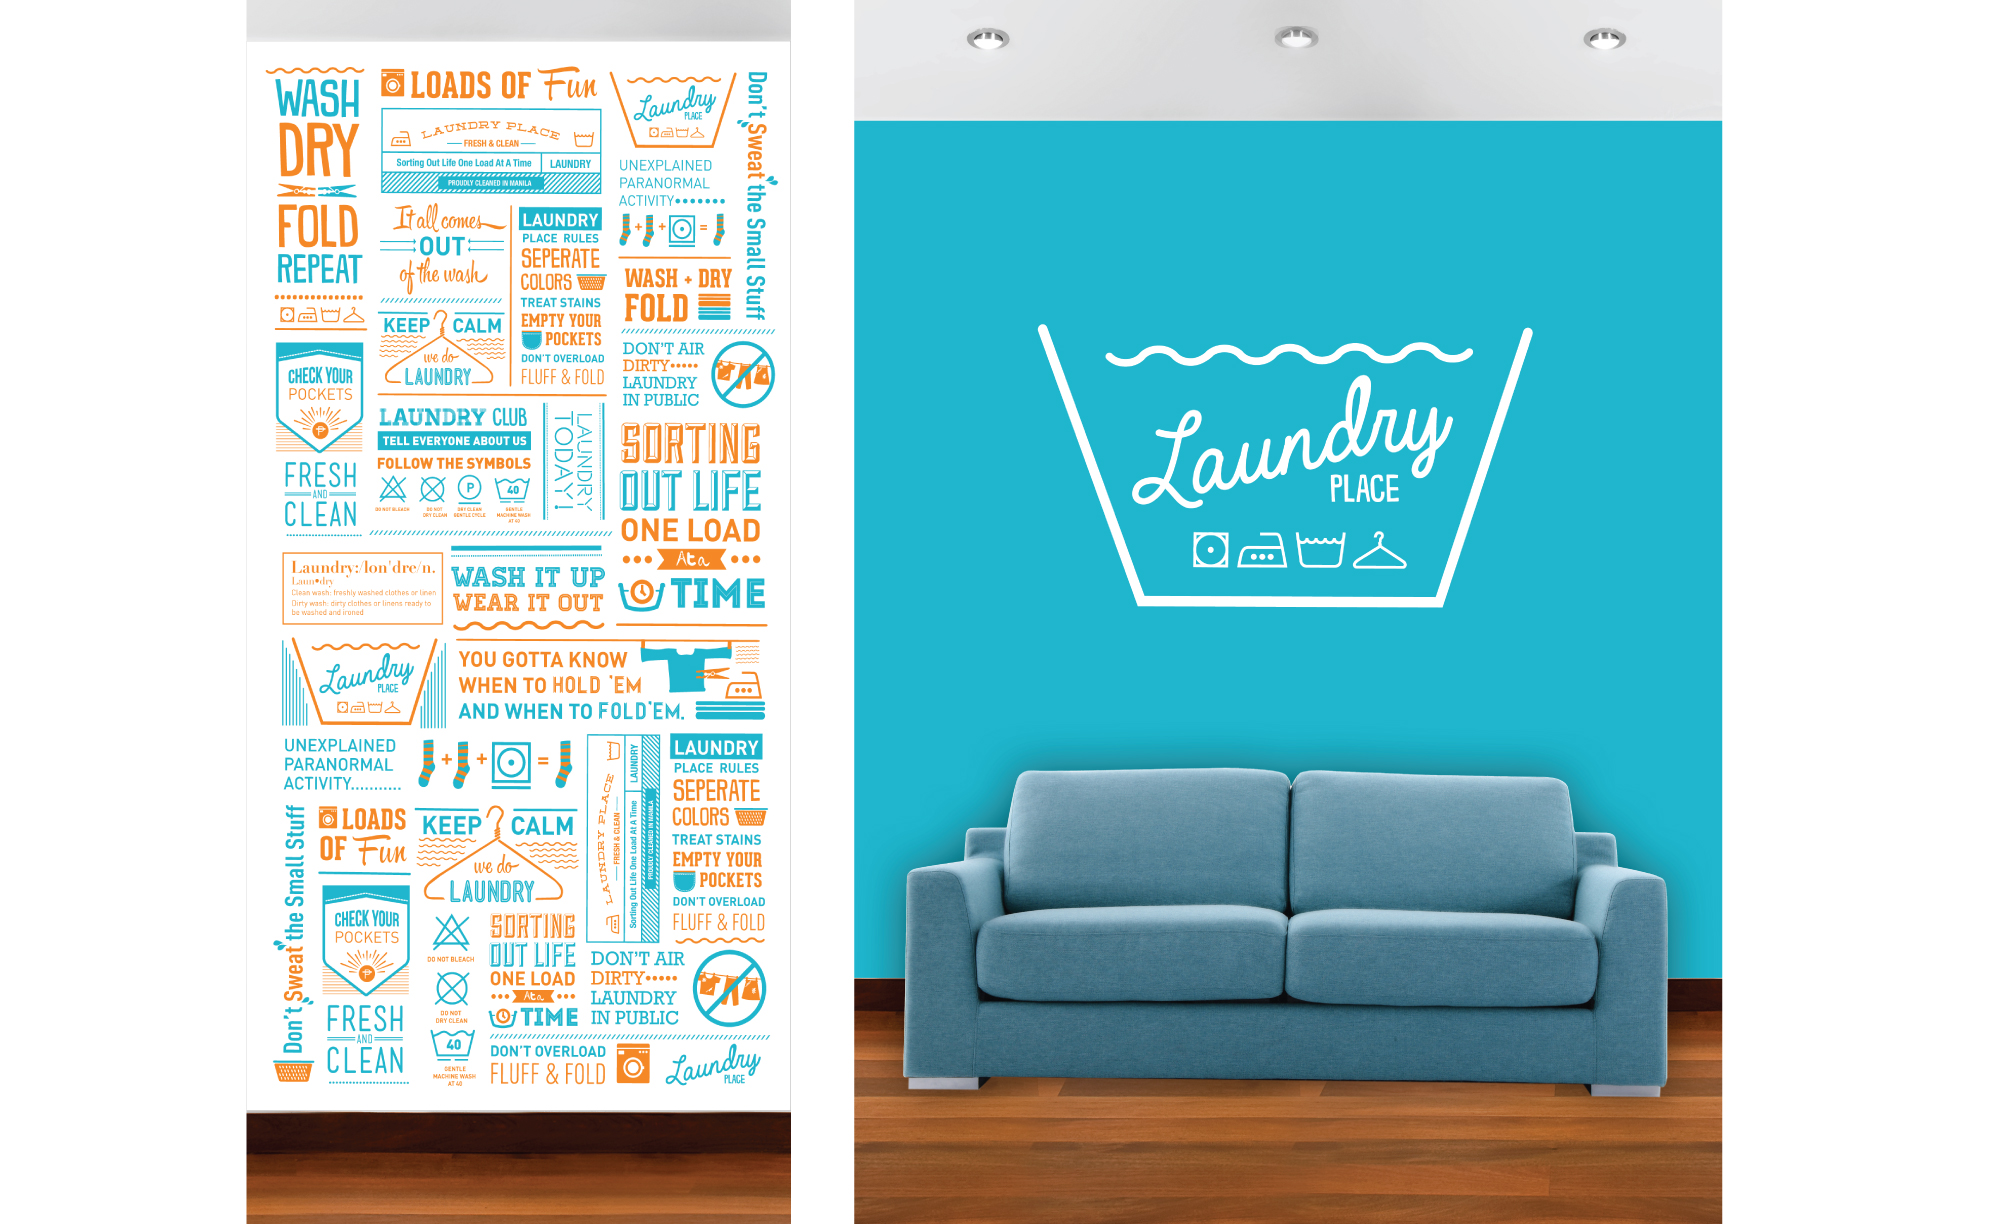 laundry-place-inside-wall